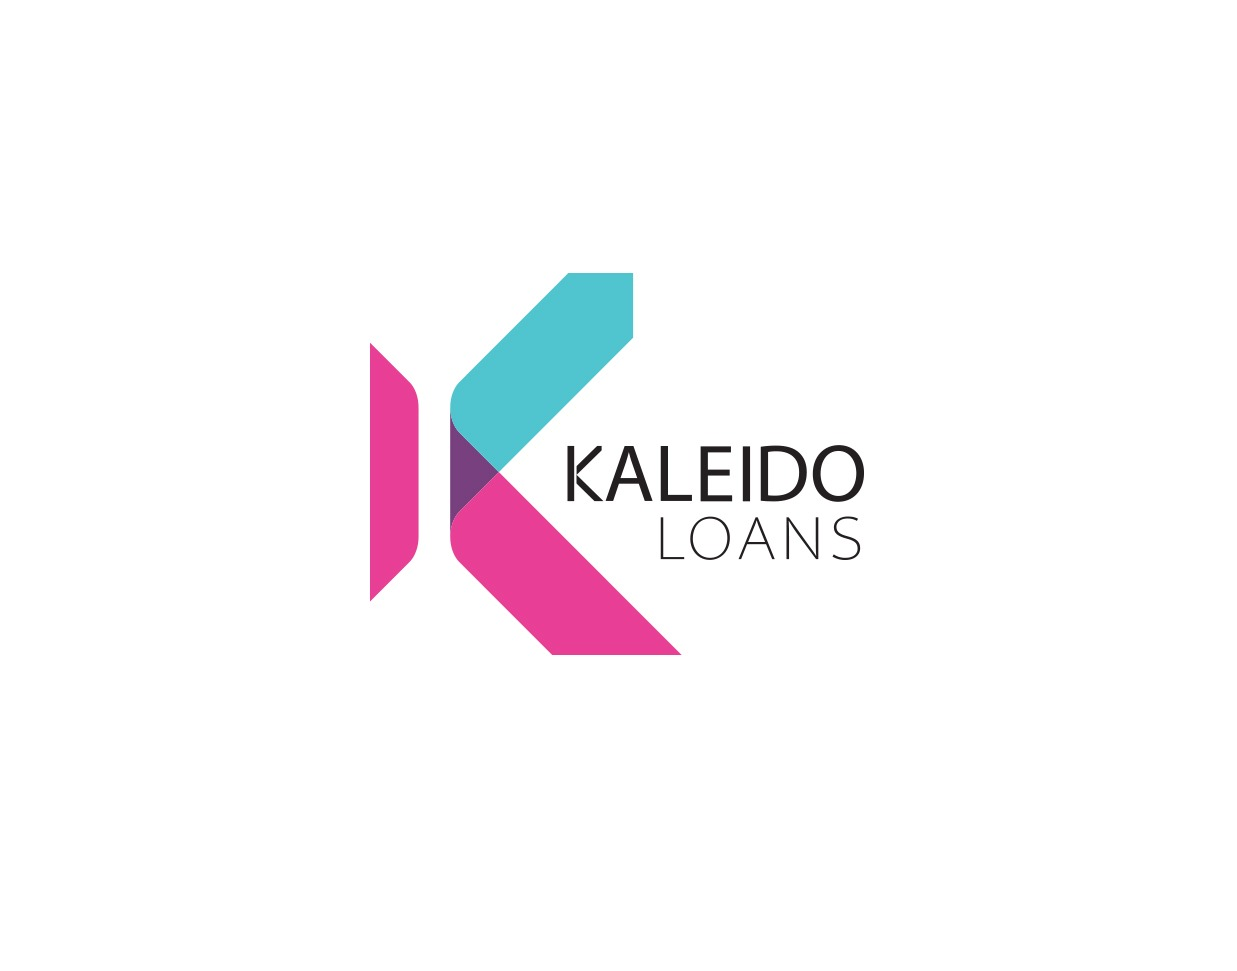 Kaleido Loans, a Top Mortgage Broker in North Strathfield, NSW Eases the Mortgage Loan Application Process